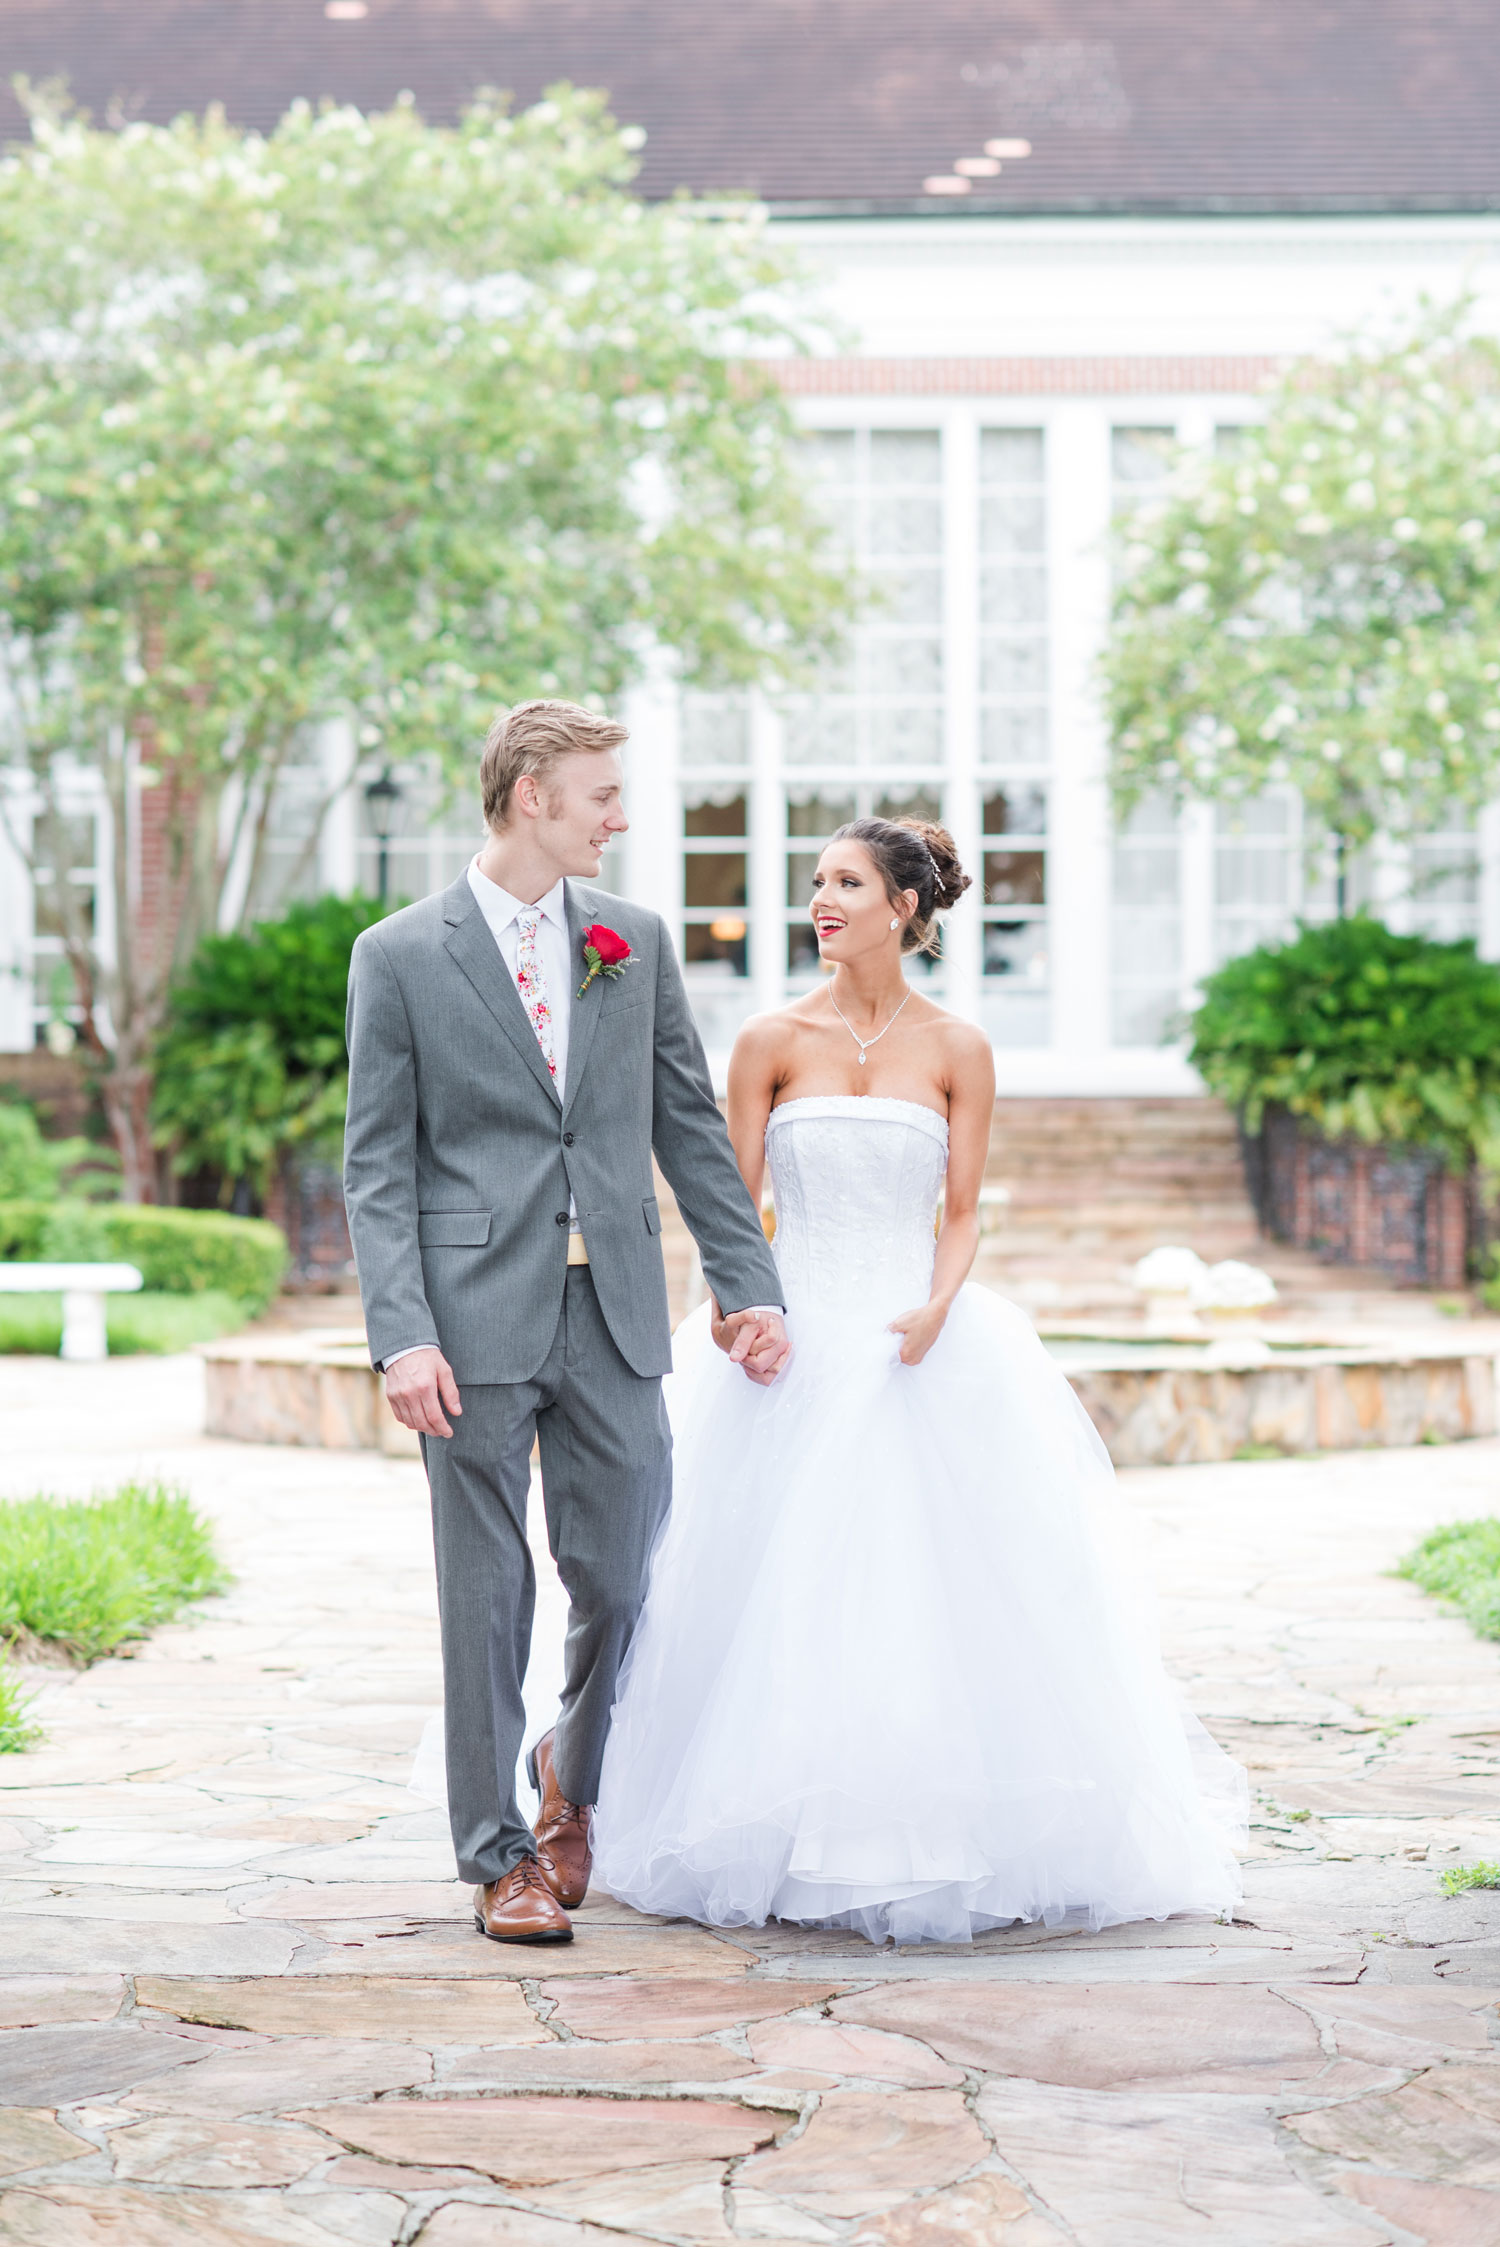 ©christineaustinphotography_Wedding_01.jpg